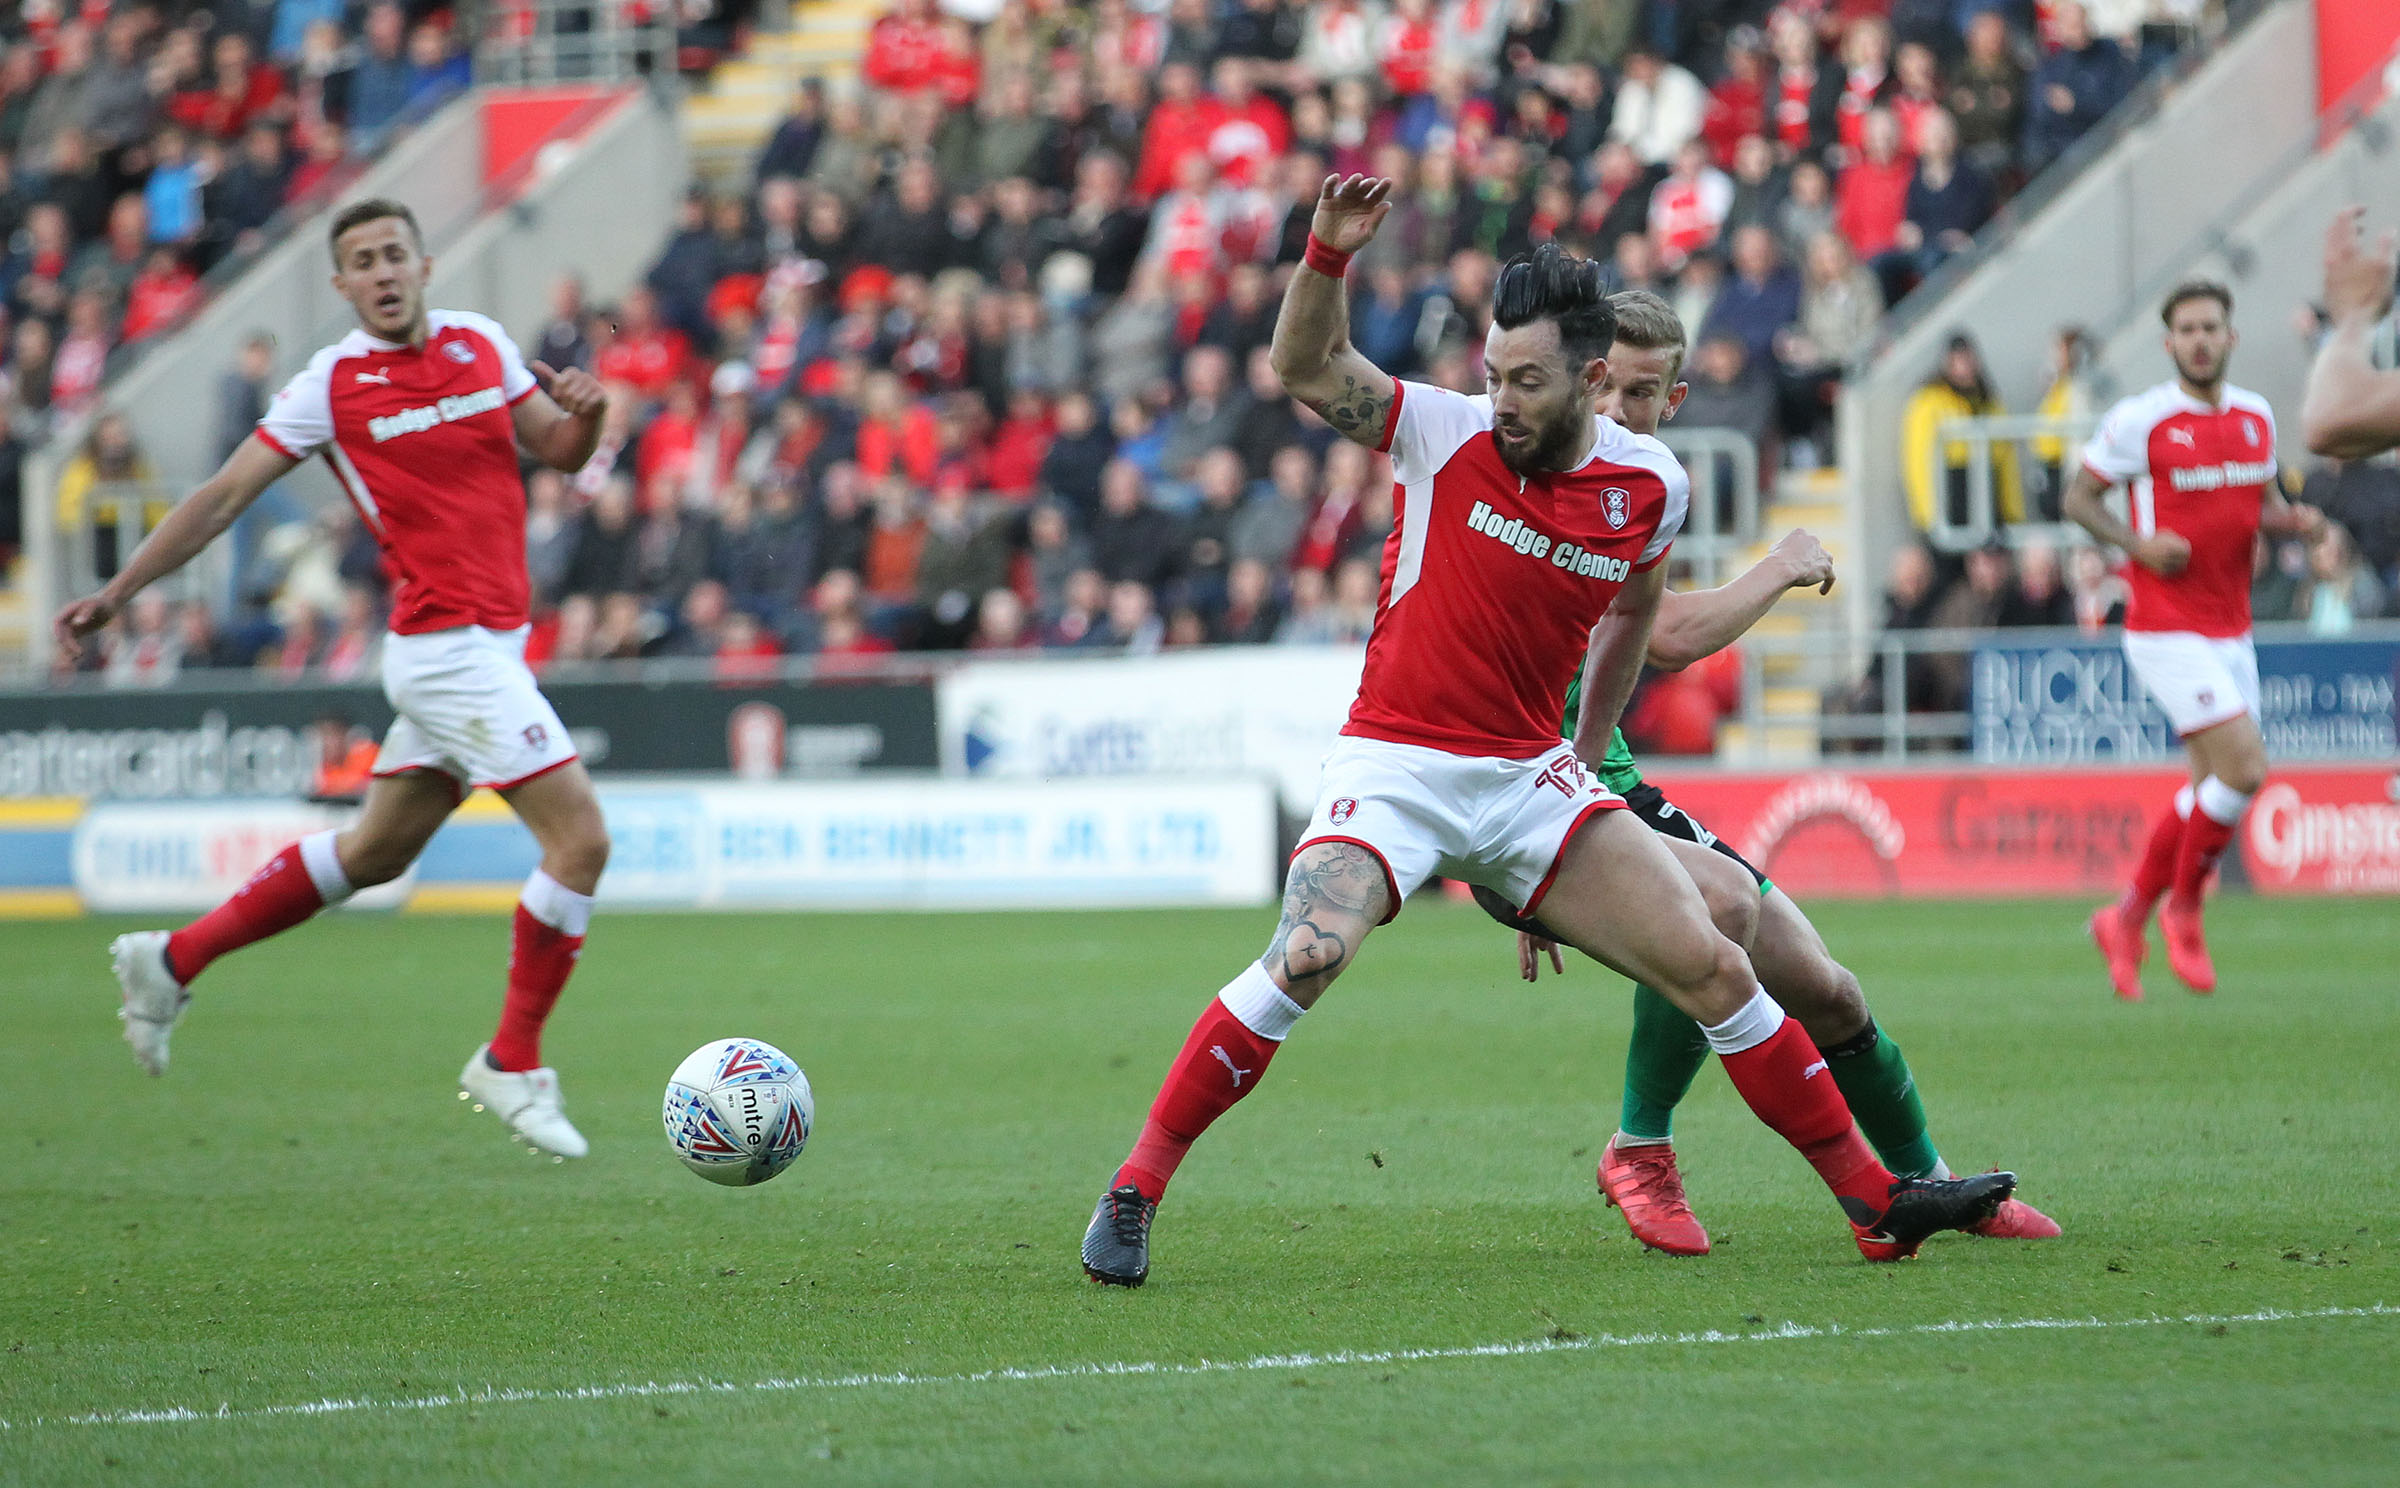 Richie Towell in action for Rotherham last night. Picture by Richard Parkes